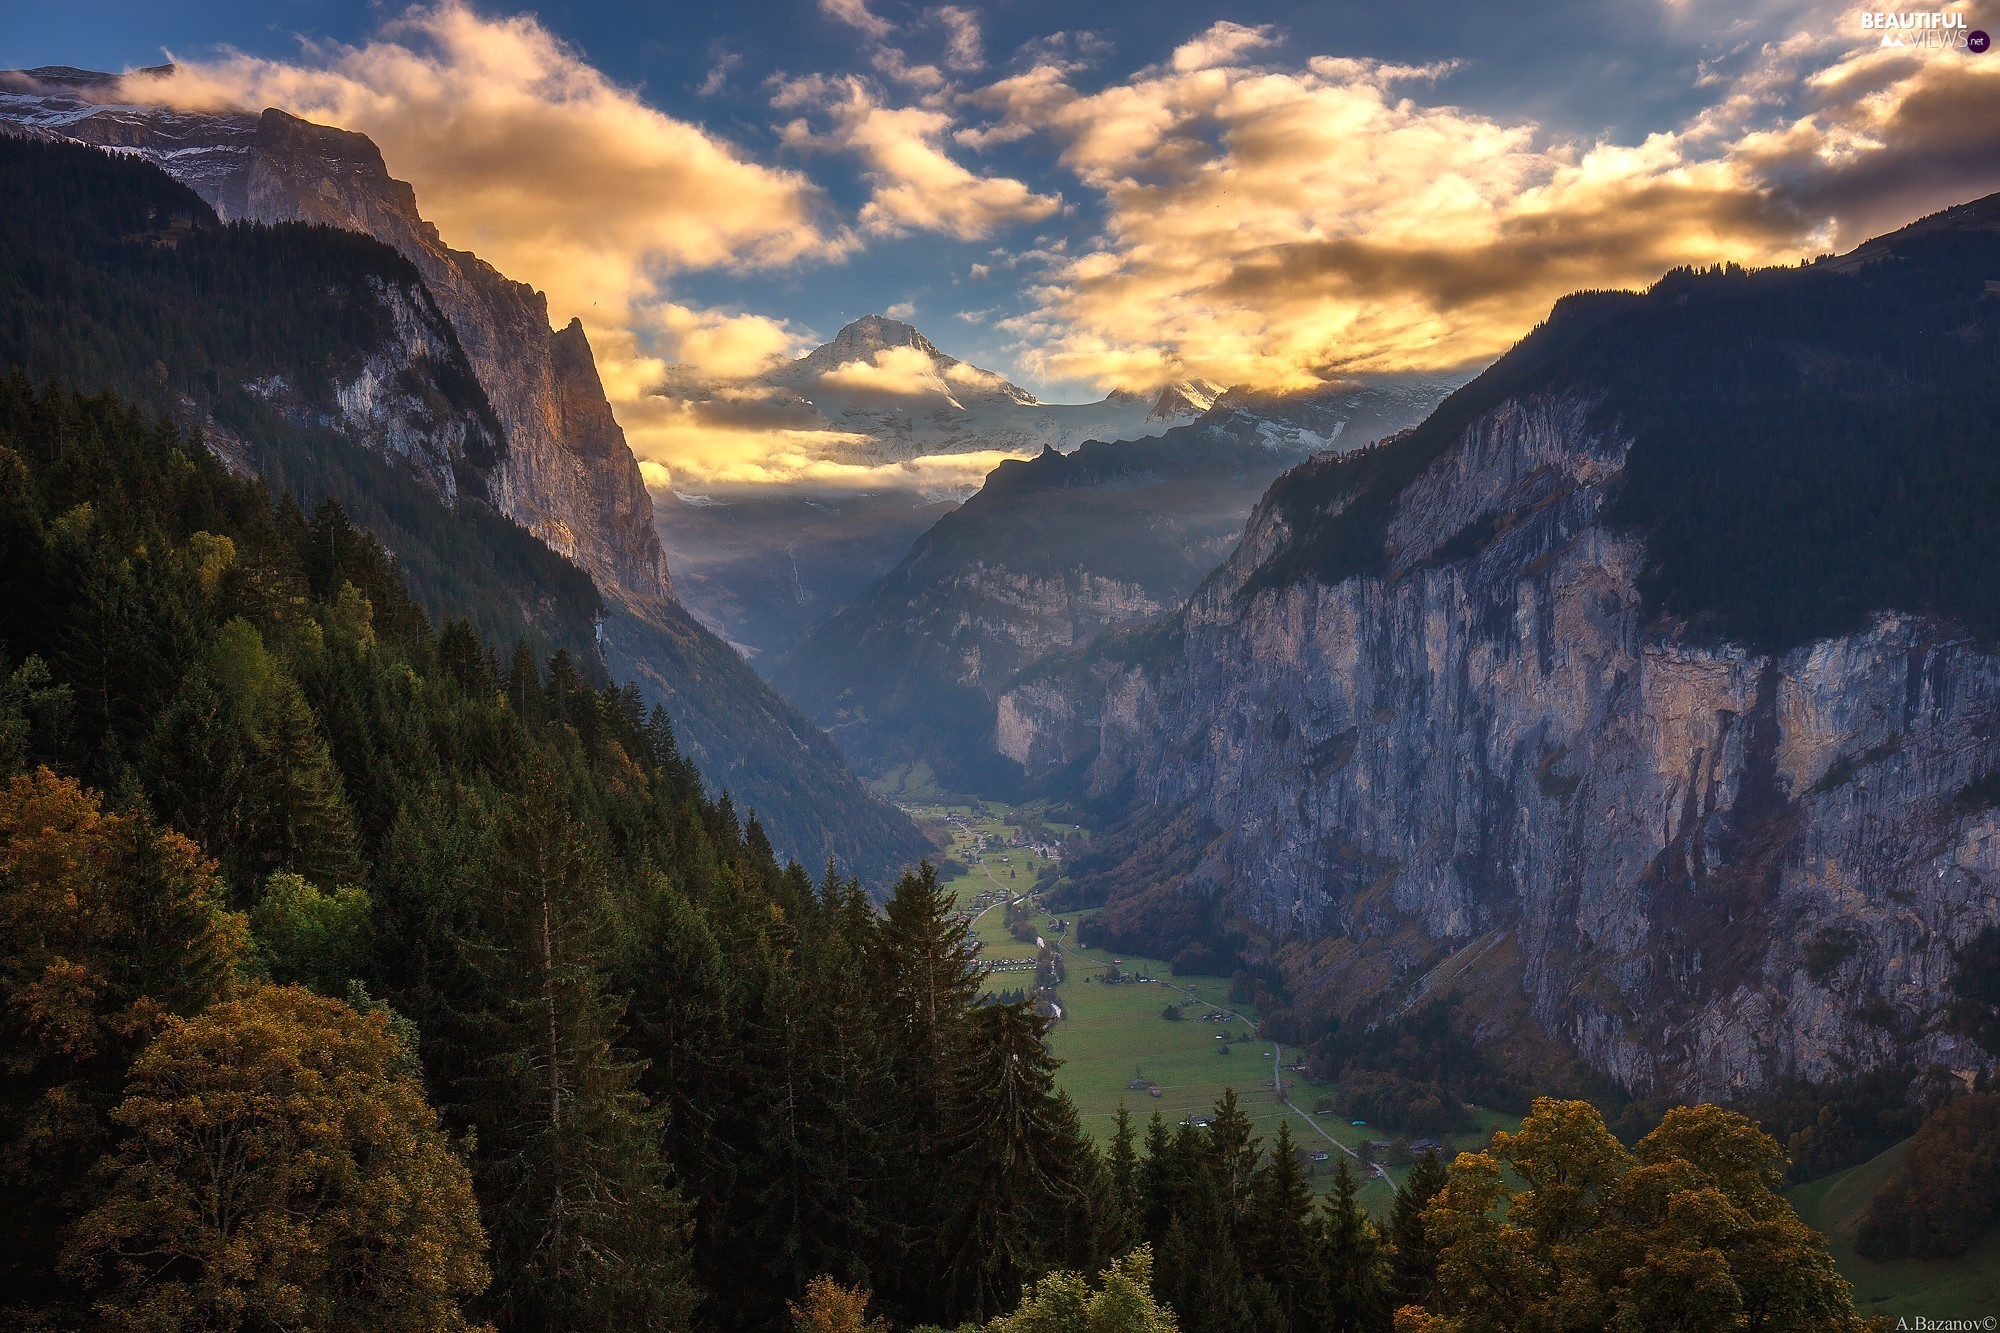 Lauterbrunnental Valley, Alps Mountains, Sunrise, trees, clouds, Canton of Bern, Switzerland, viewes